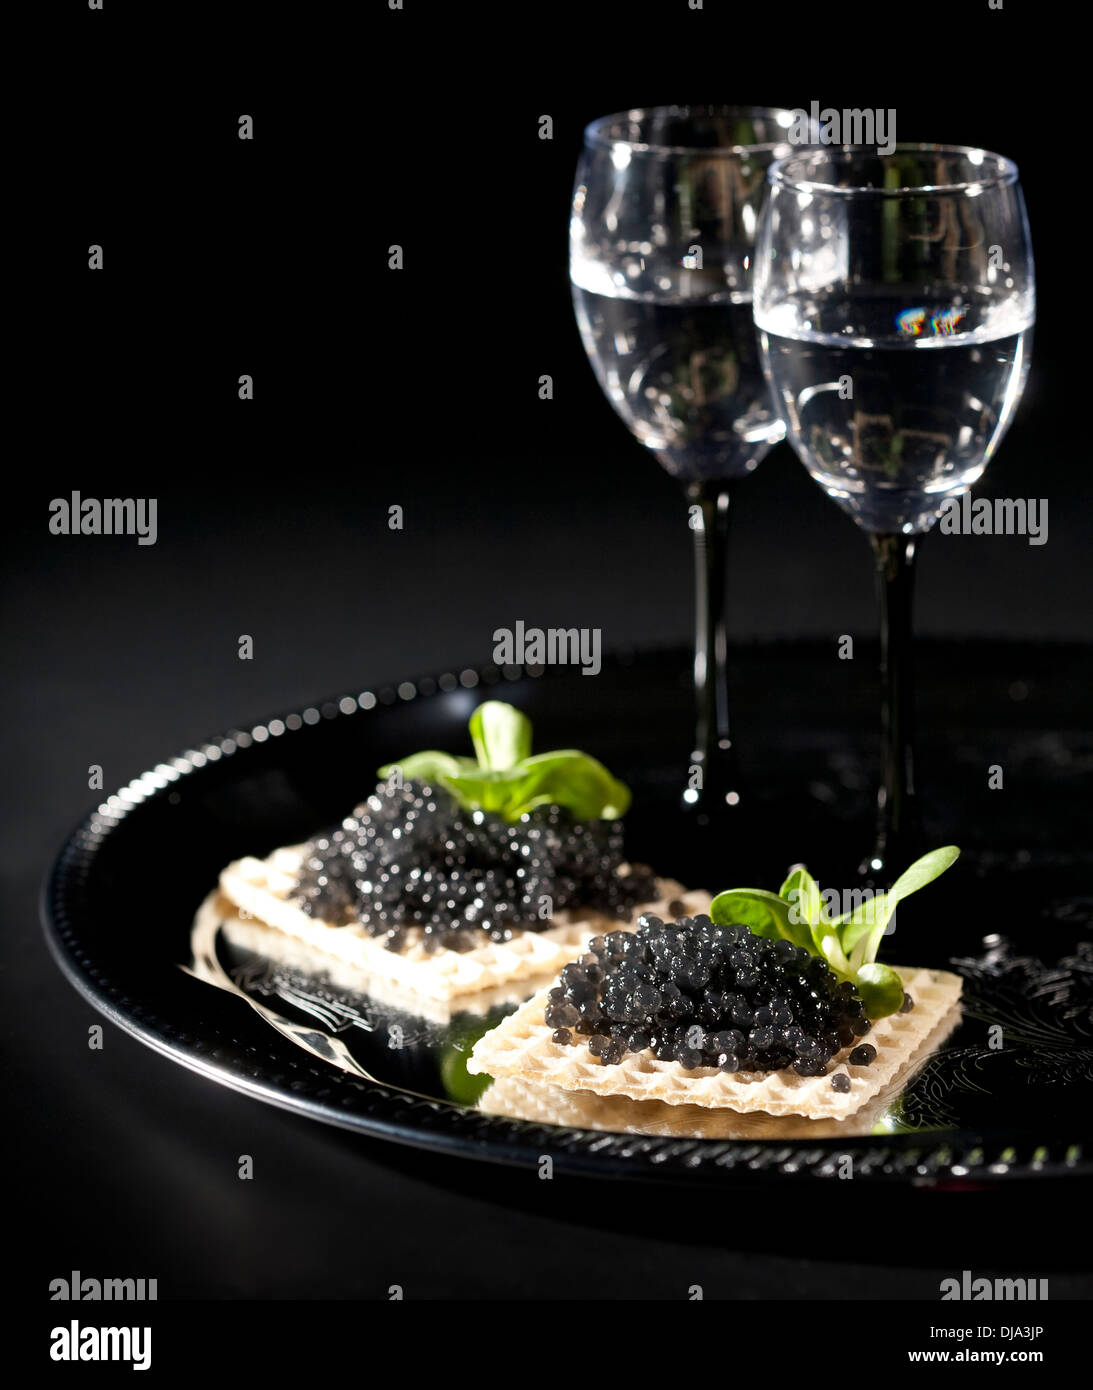 Vodka and black caviar on black background - Stock Image